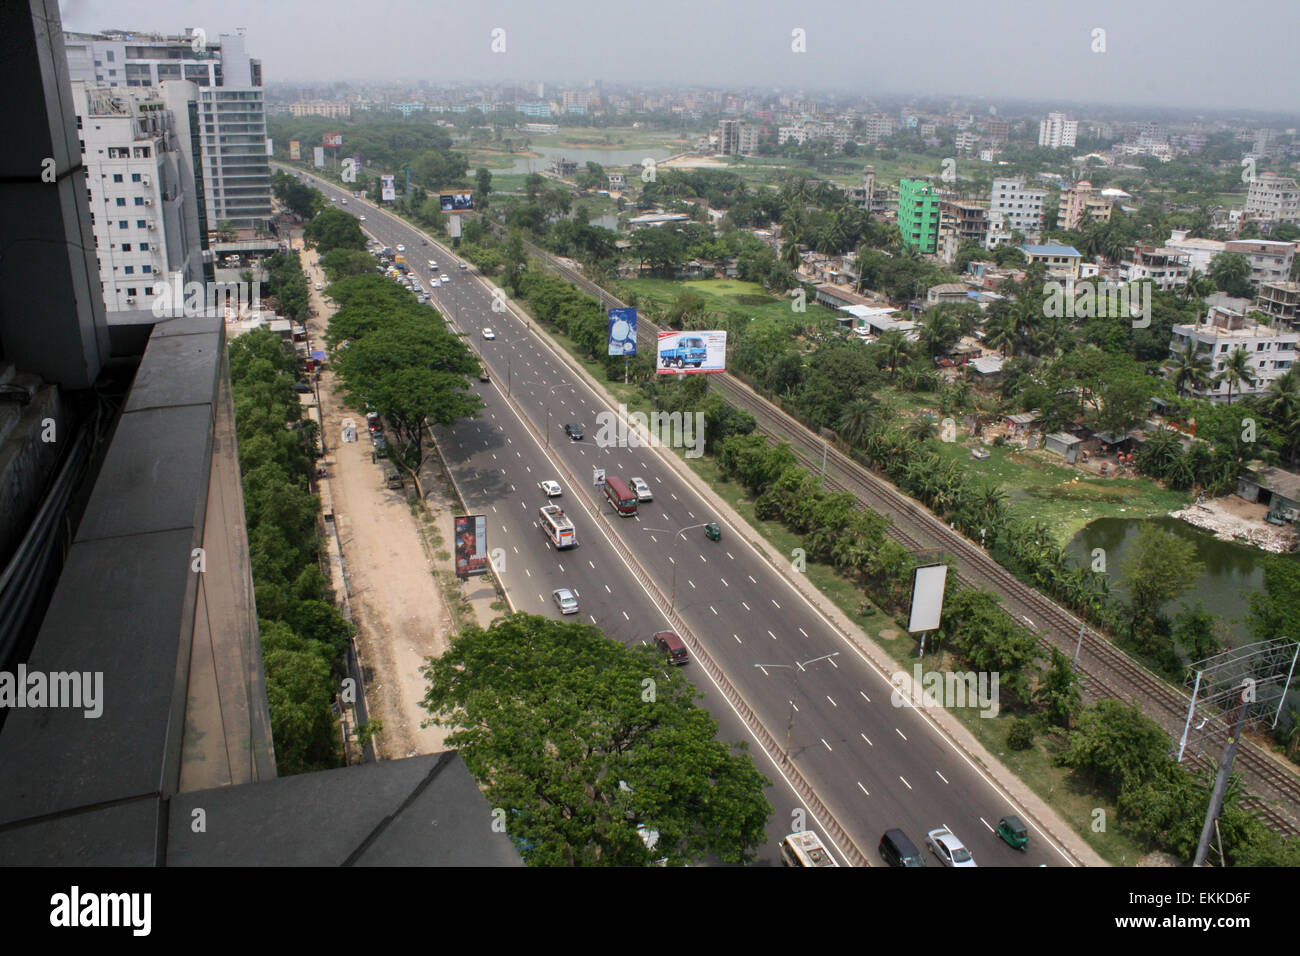 An overview of Dhaka city, the fastest population growth among the South Asian cities. on April 11, 2015 Population - Stock Image